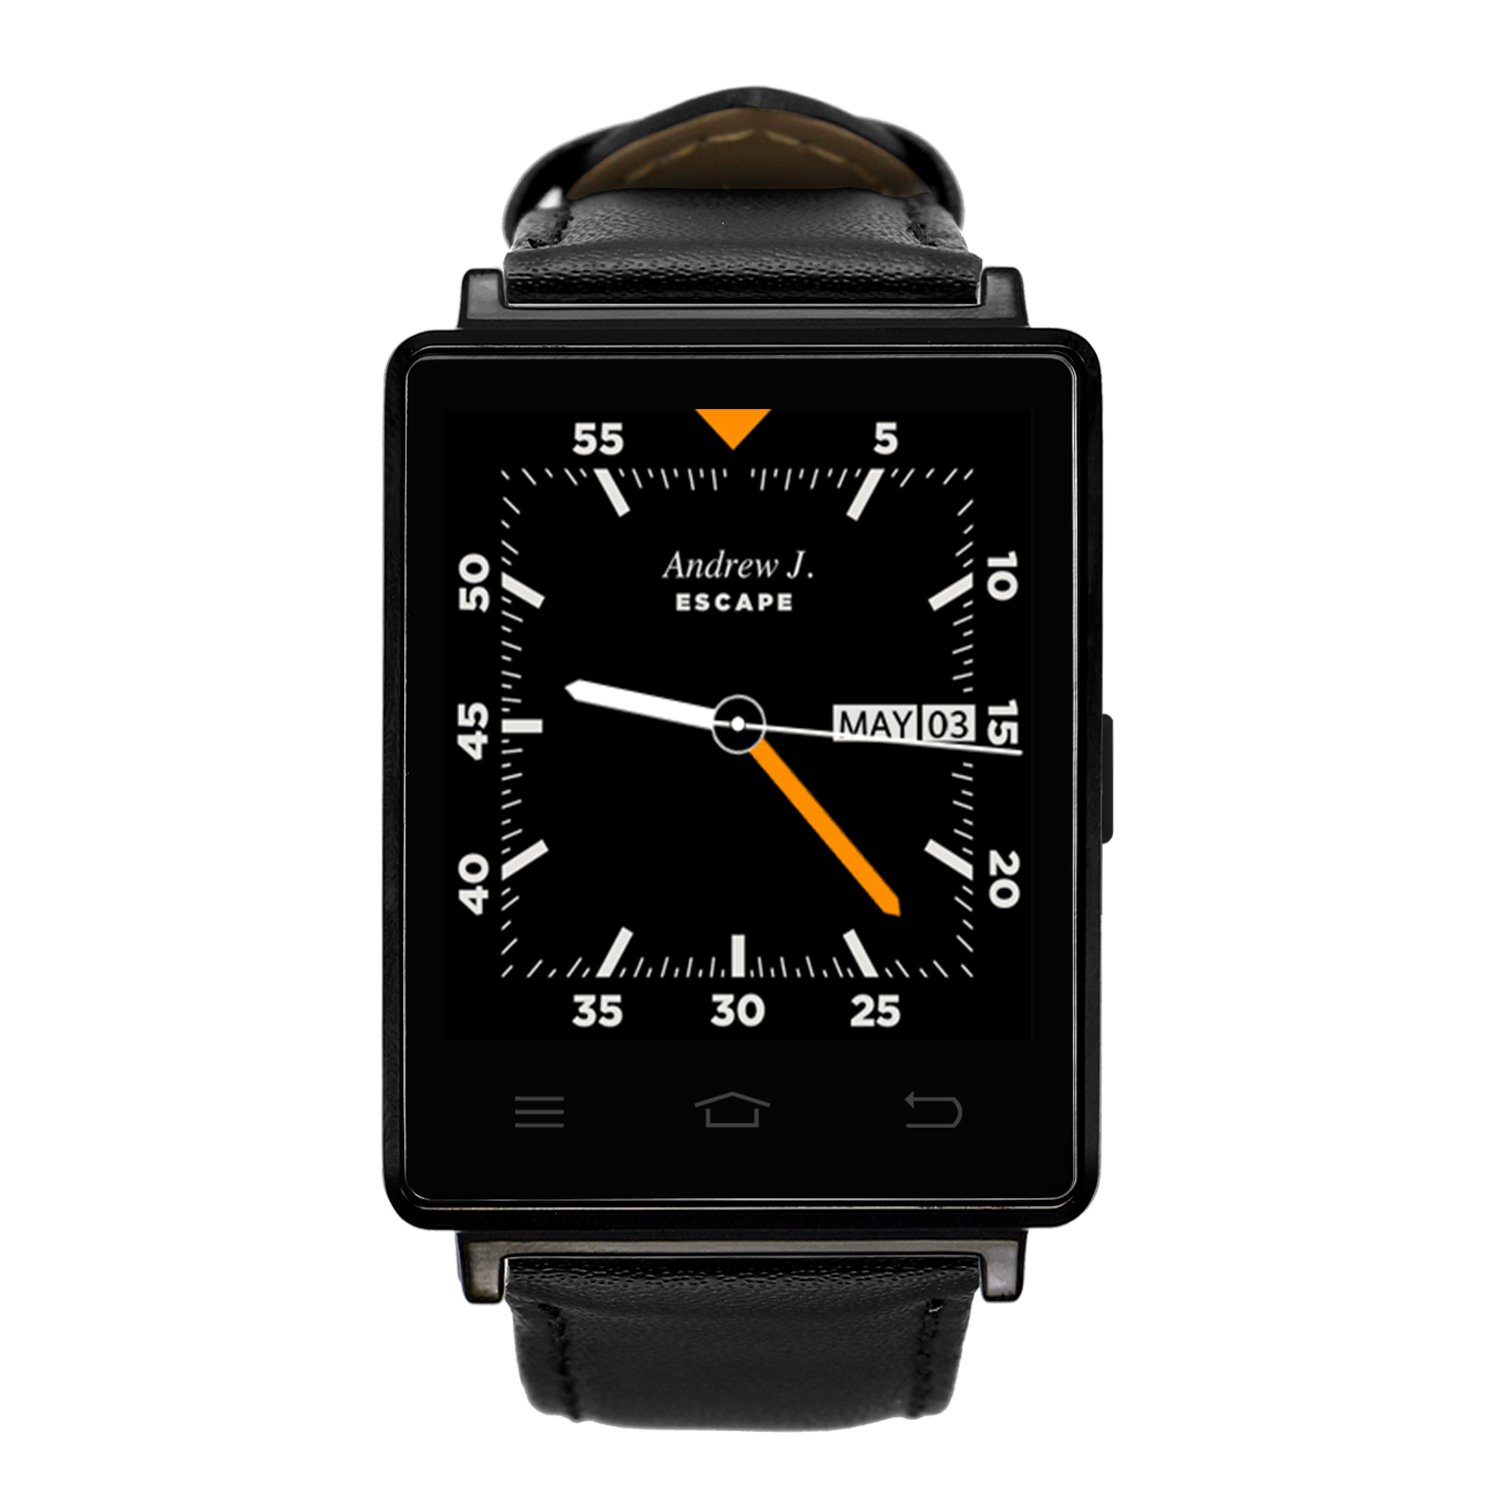 KKtick SMARTWATCH NO,1 D6 Relojes de pulse 1,63